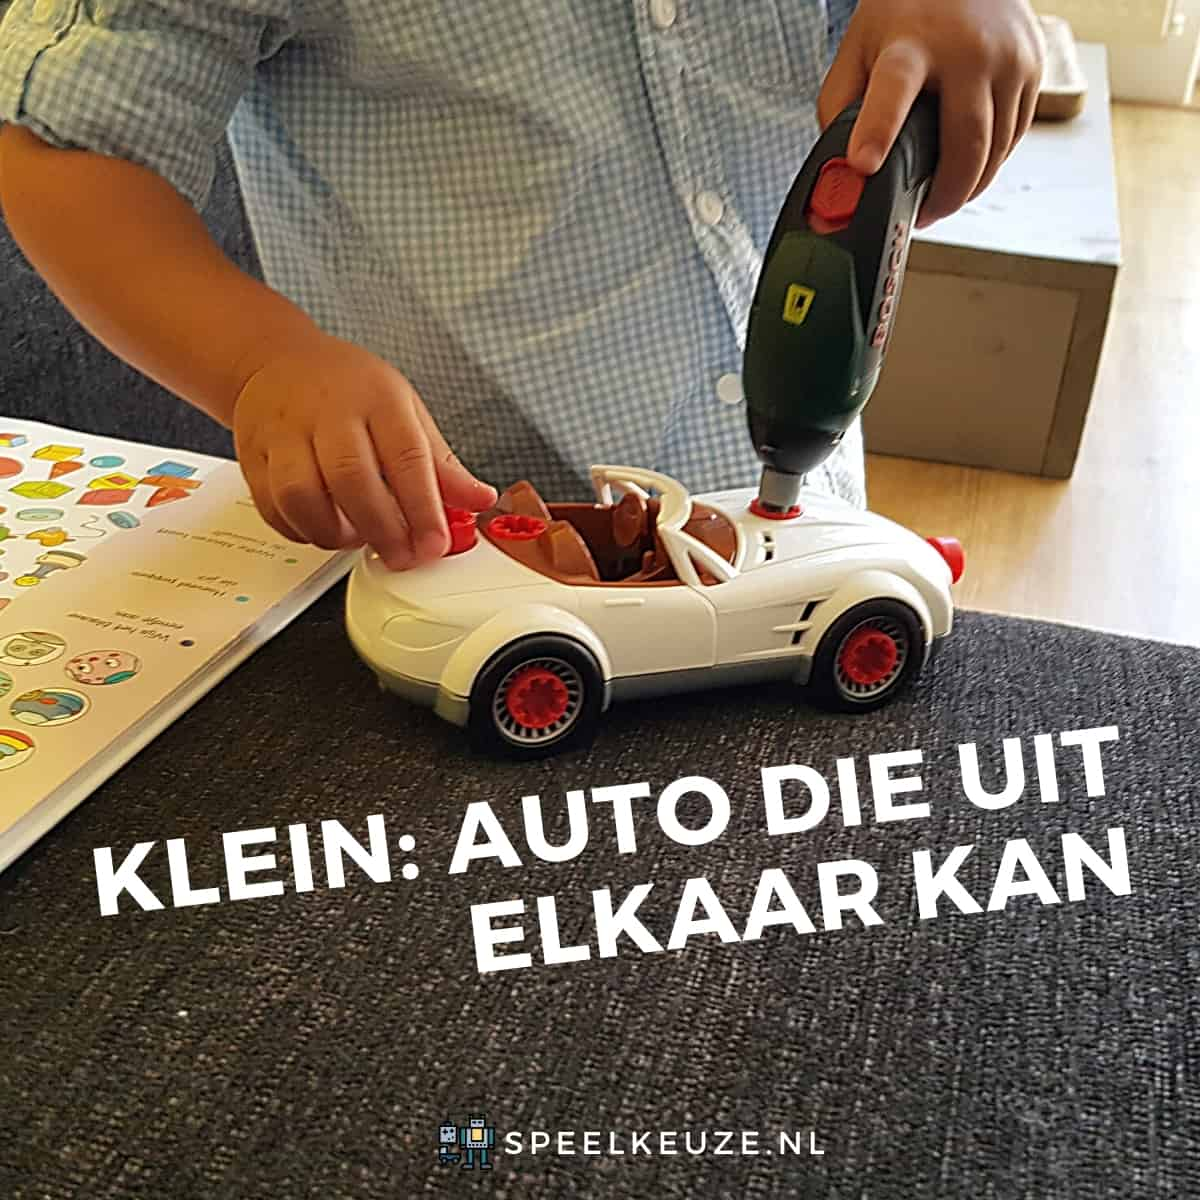 Small car that can be taken apart